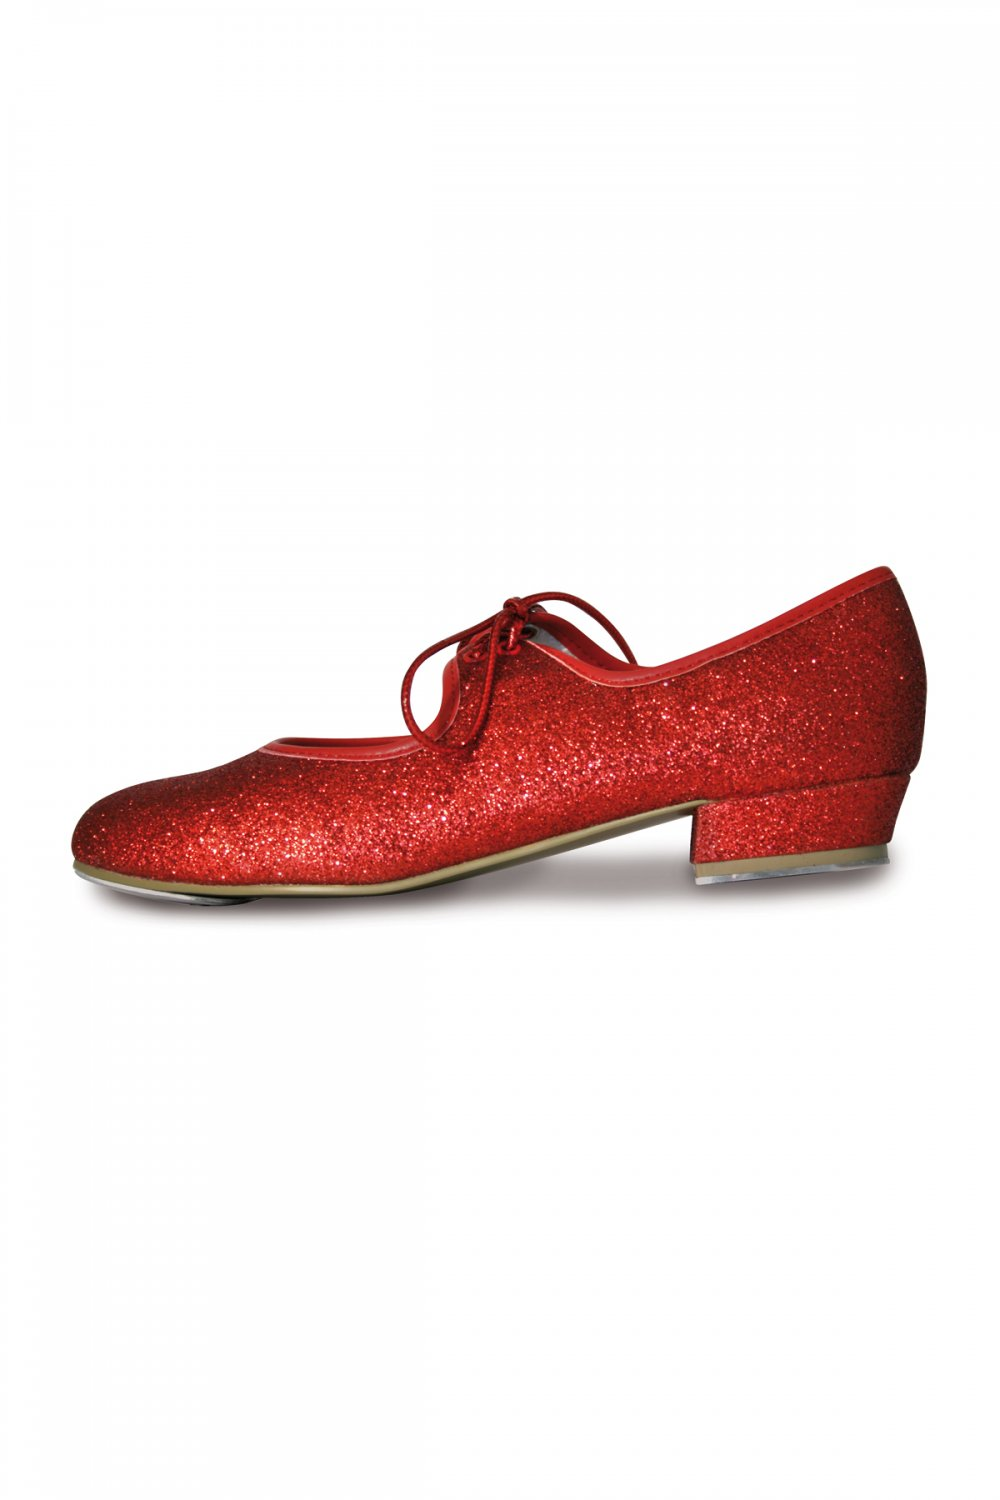 ROCH VALLEY RUBY RED SPARKLY DOROTHY TAP SHOES GIRLS SIZES FREE POSTAGE